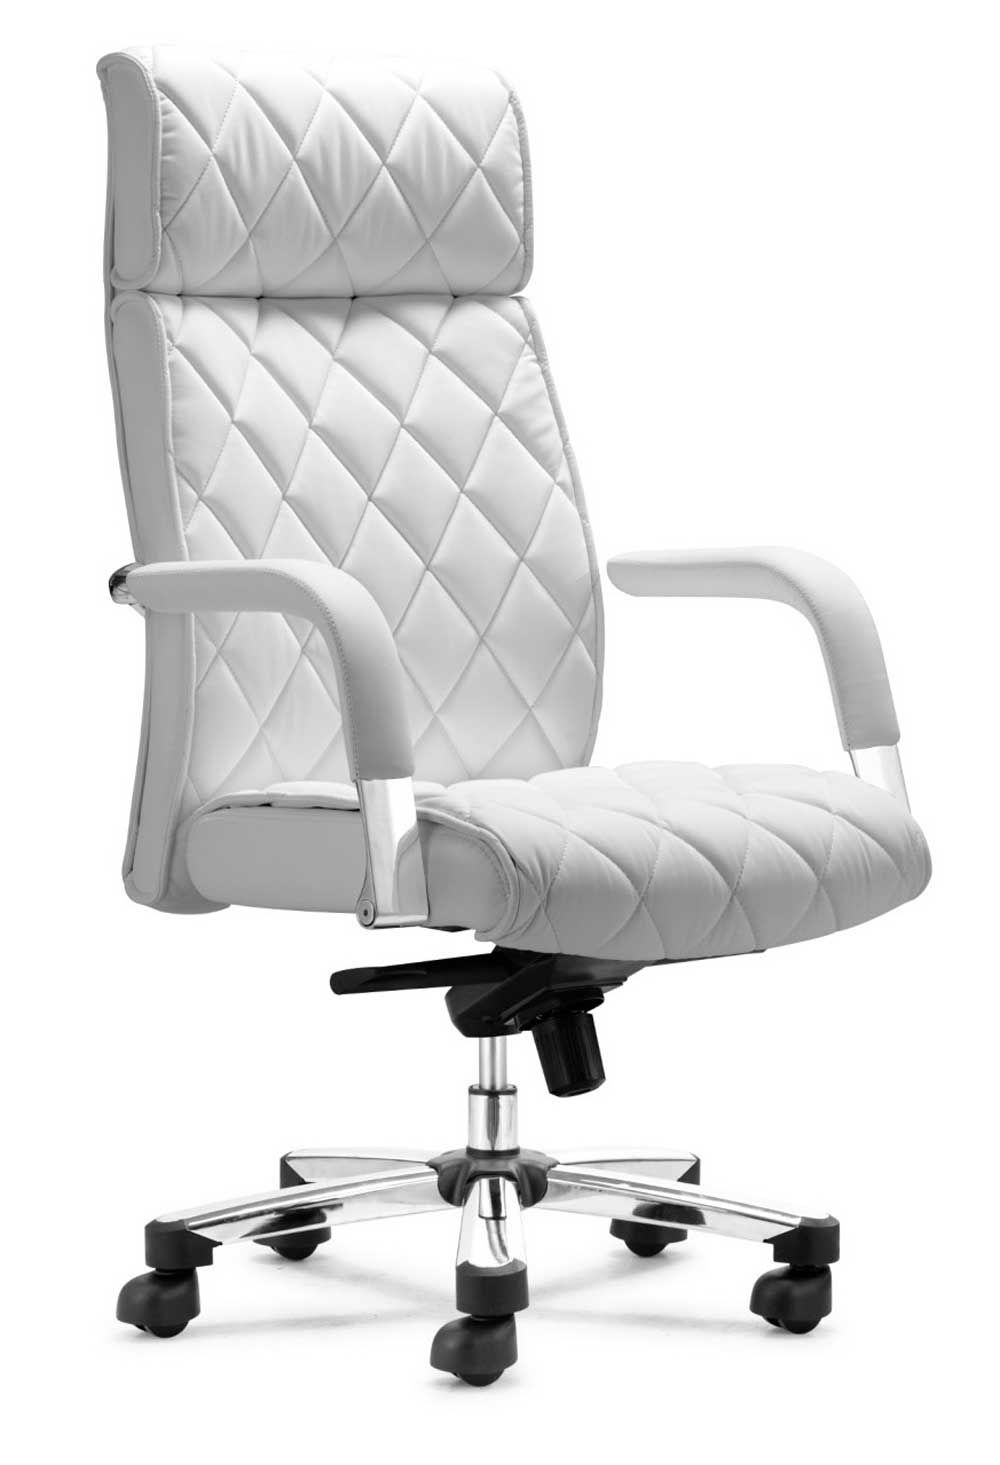 Furniture Home Office Chairs High Back White